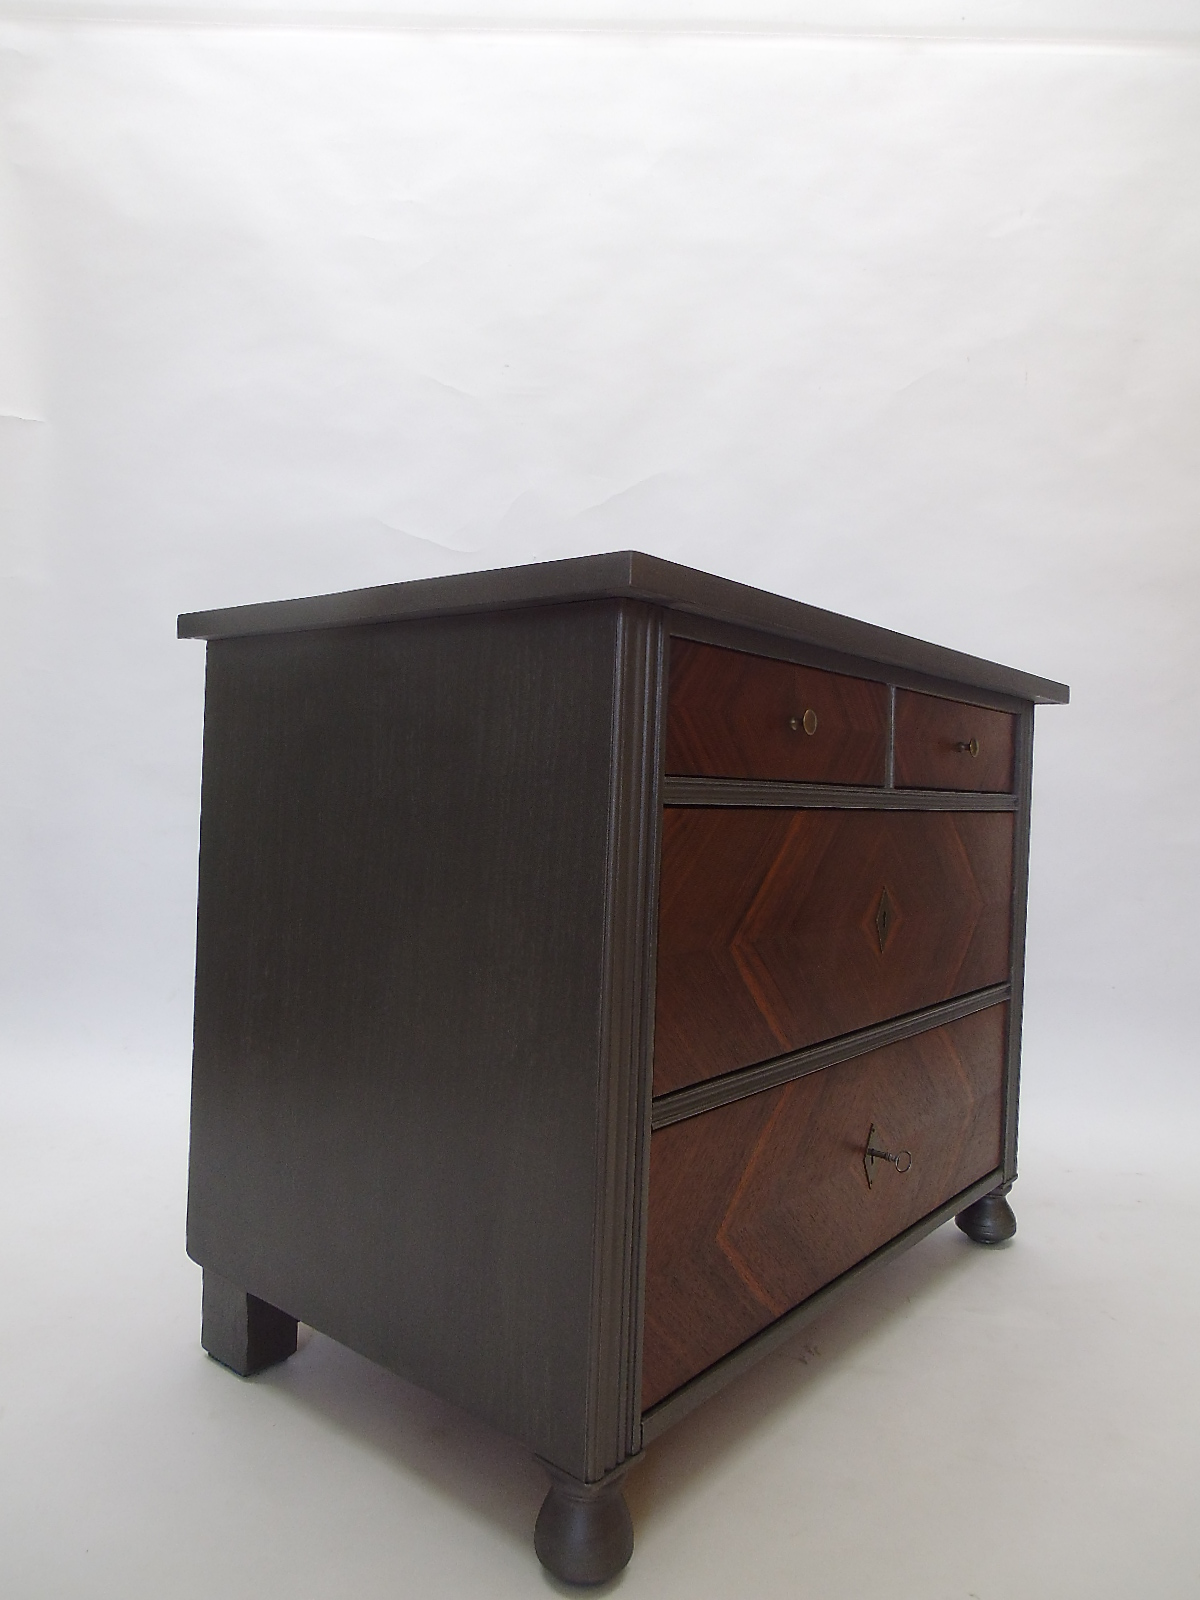 Miraculous Art Deco Chest Of Drawers With A Grey And Walnut Finish Creativecarmelina Interior Chair Design Creativecarmelinacom